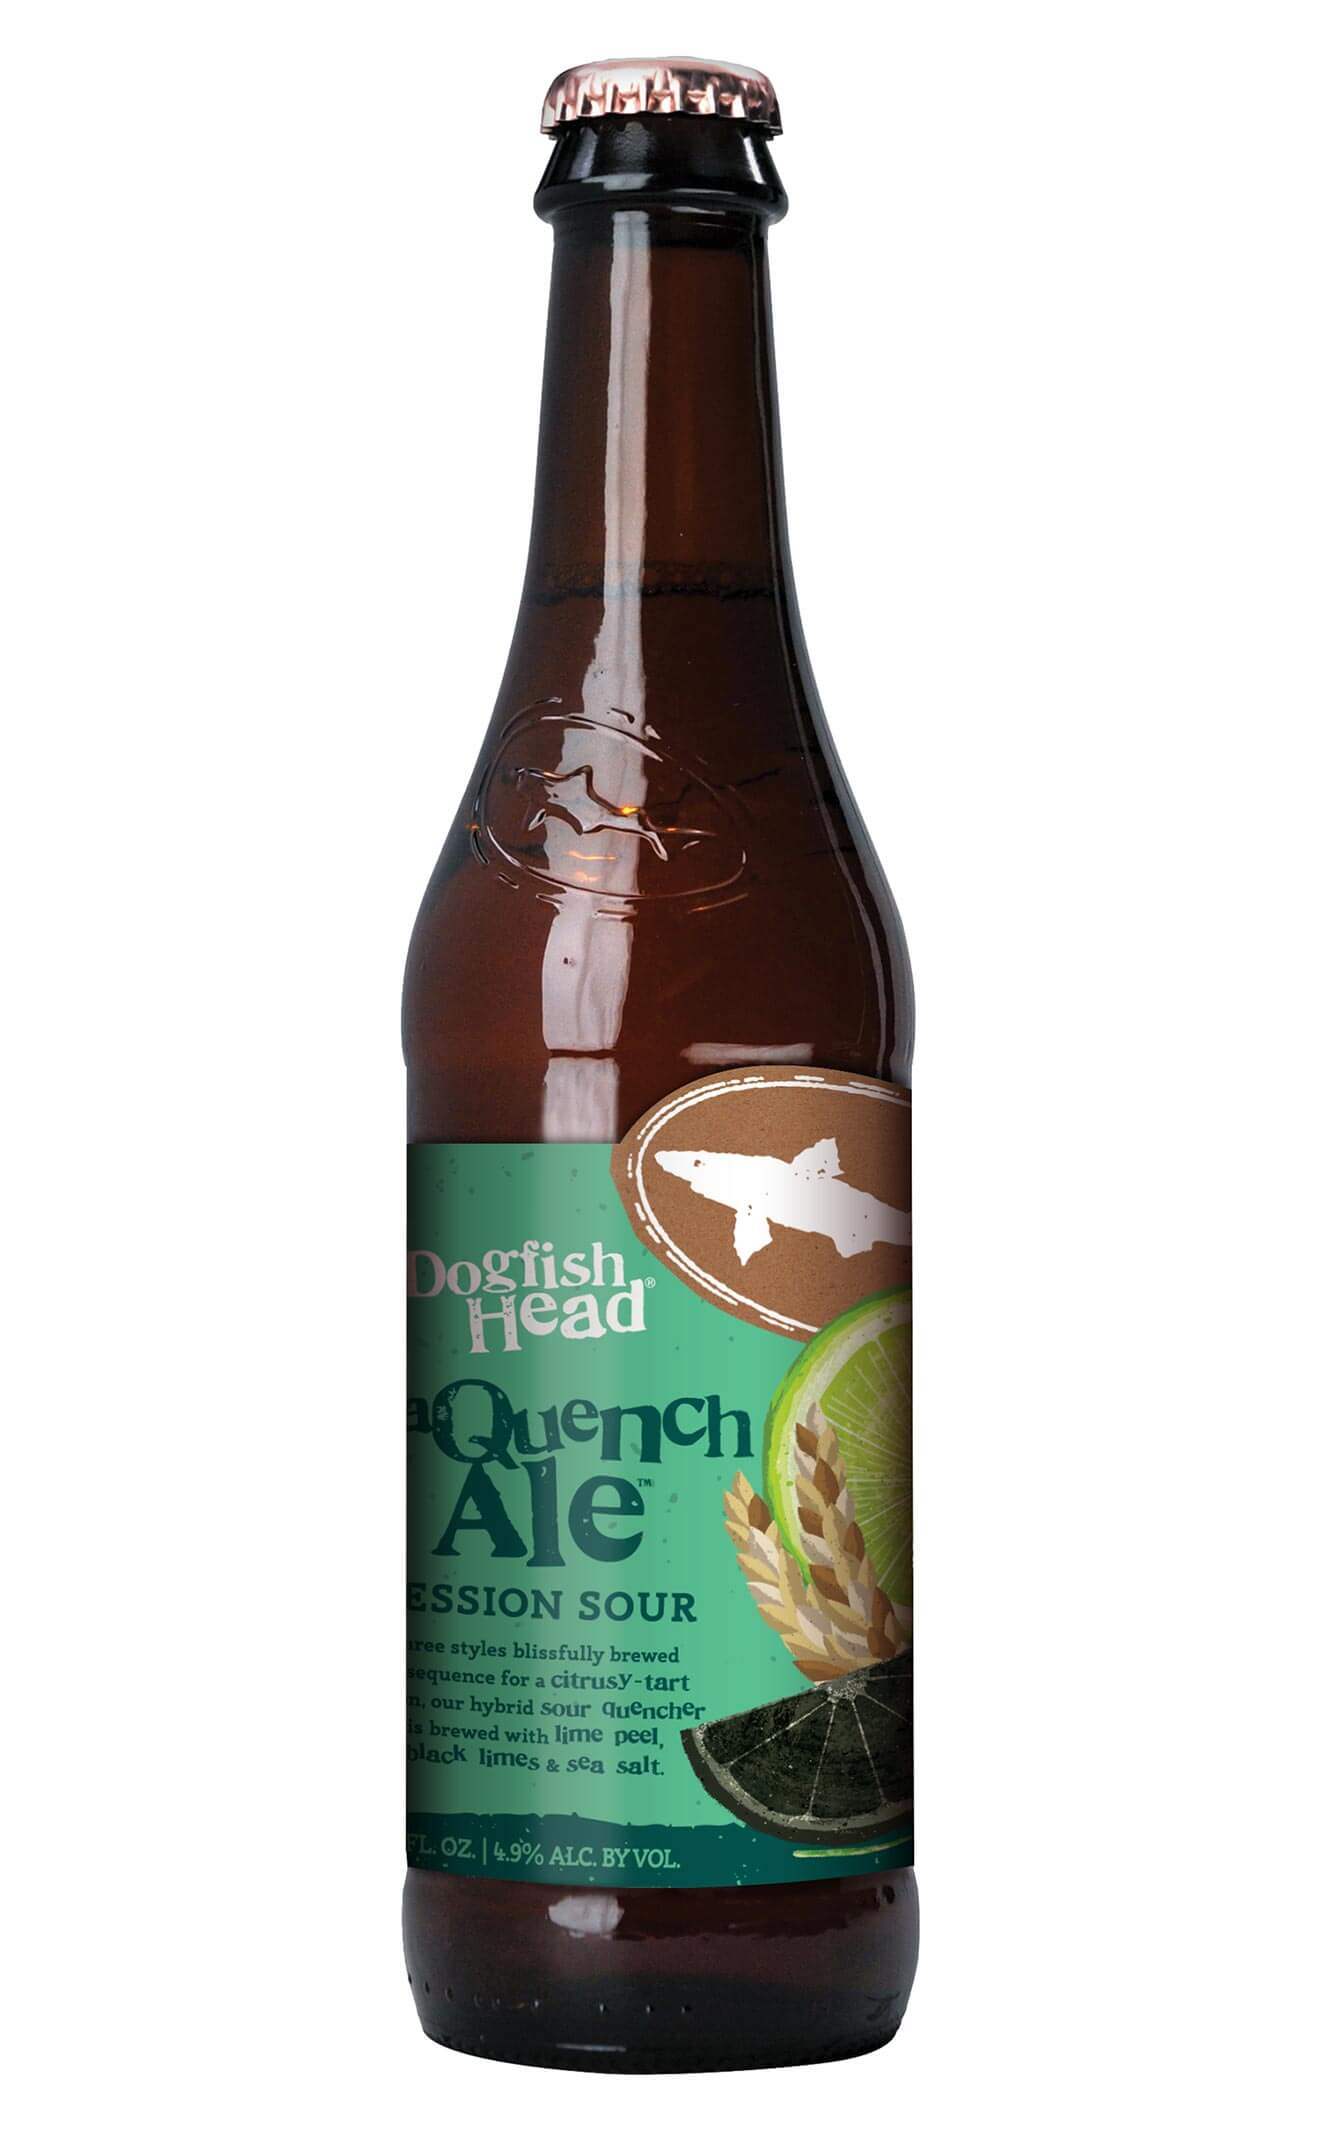 SeaQuench Ale from Dogfish Head